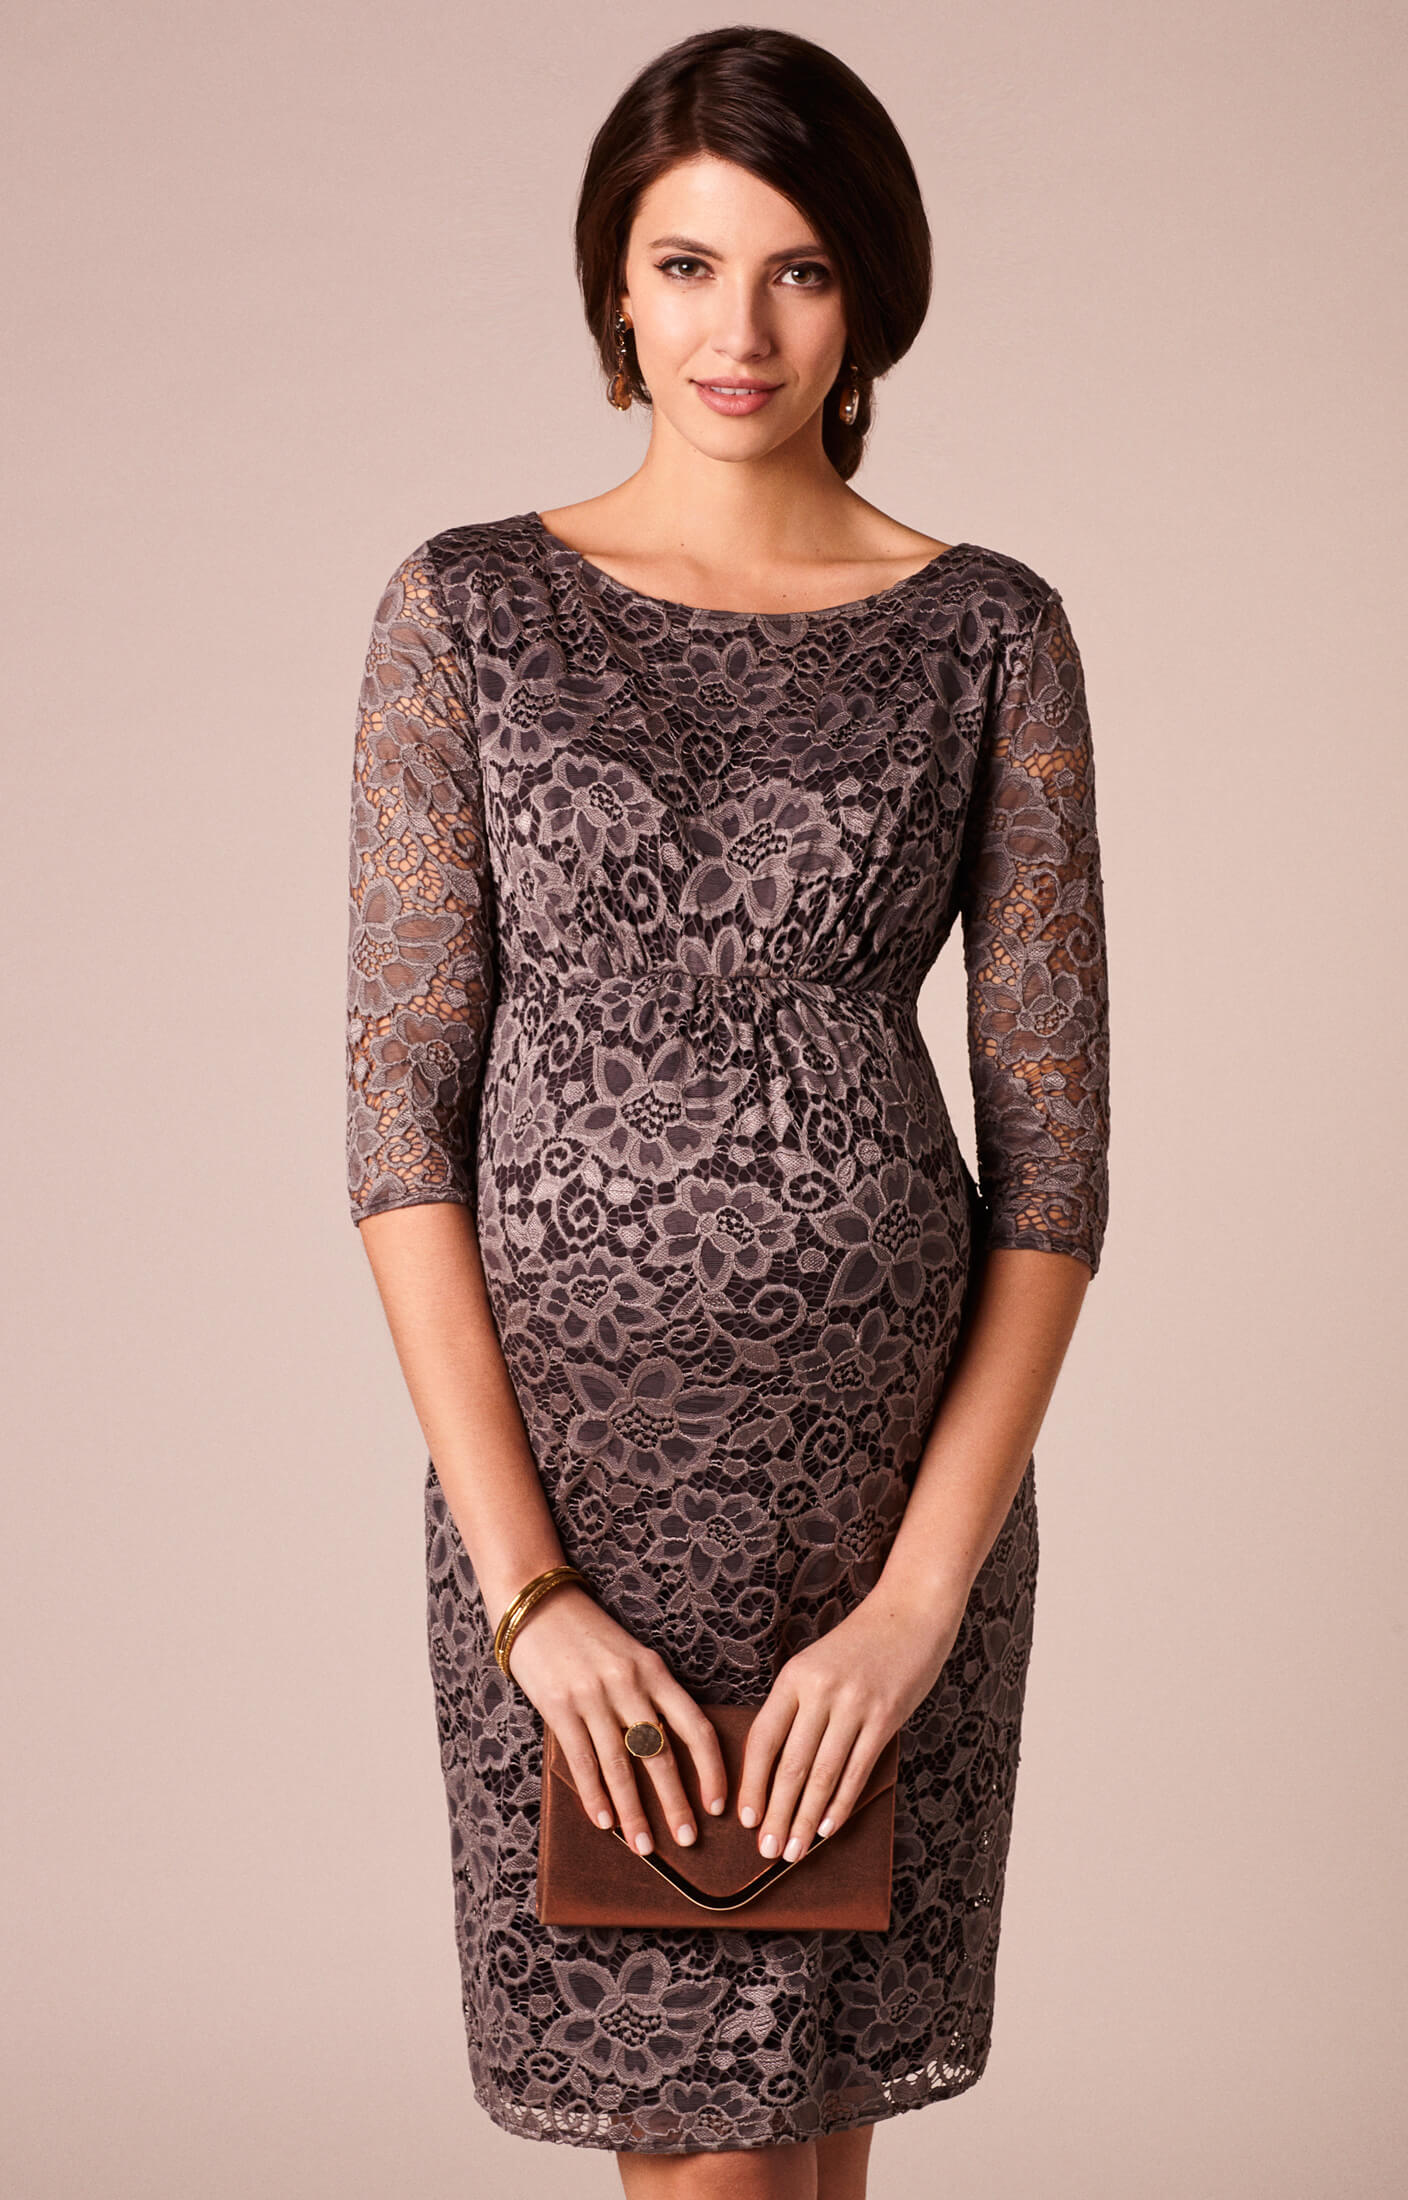 The outlet maternity dresses maternity evening wear by tiffany abigail maternity lace dress cocoa ombrellifo Choice Image